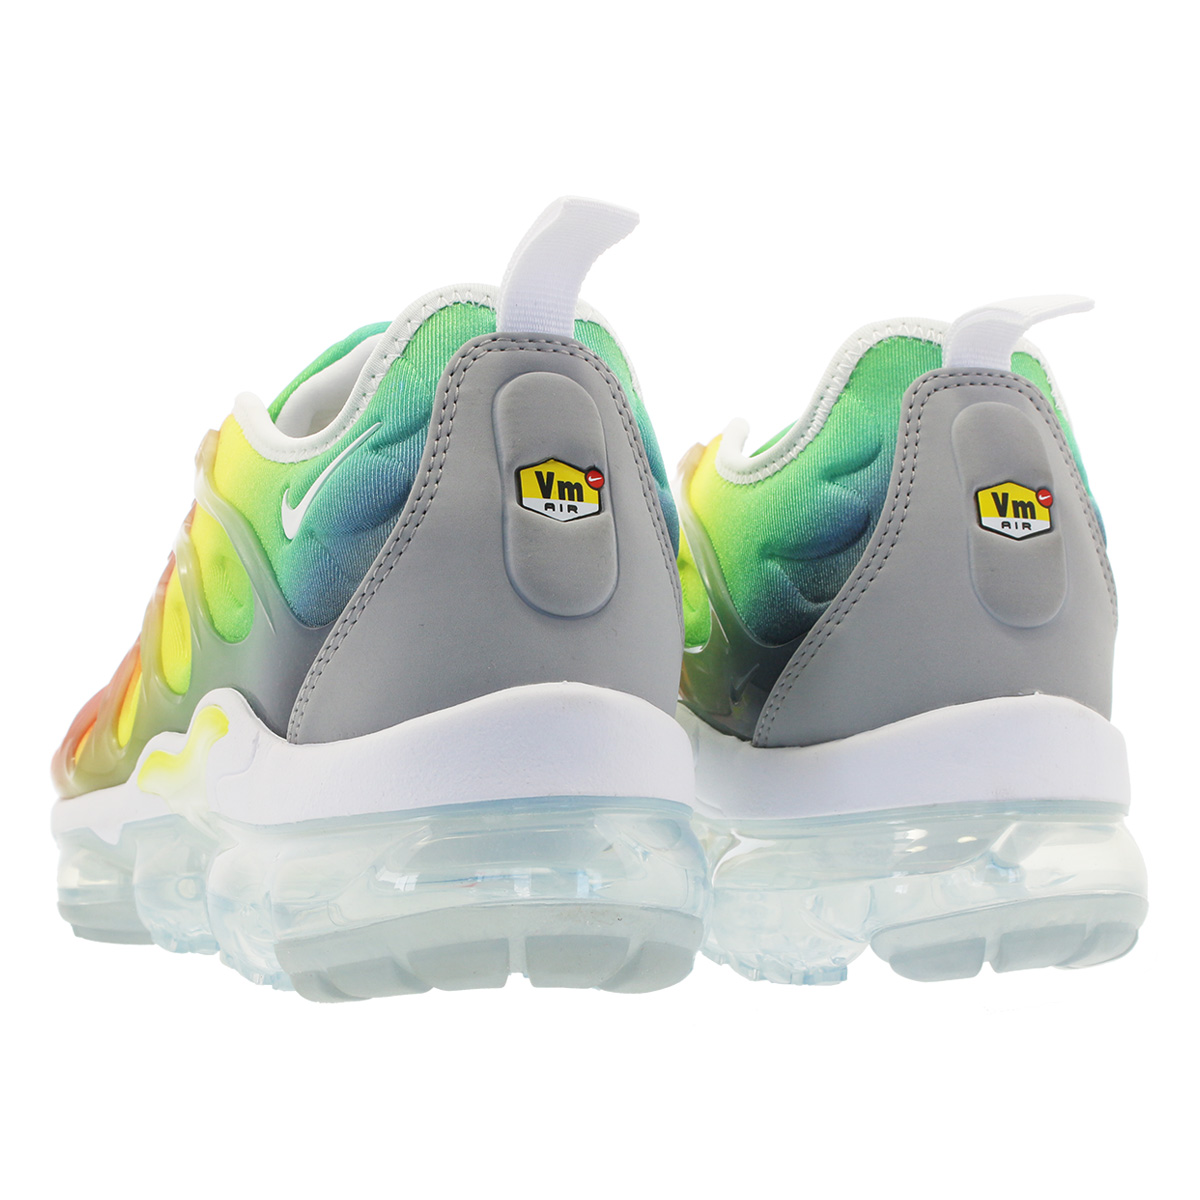 new product 7186e db1df air vapormax plus white yellow